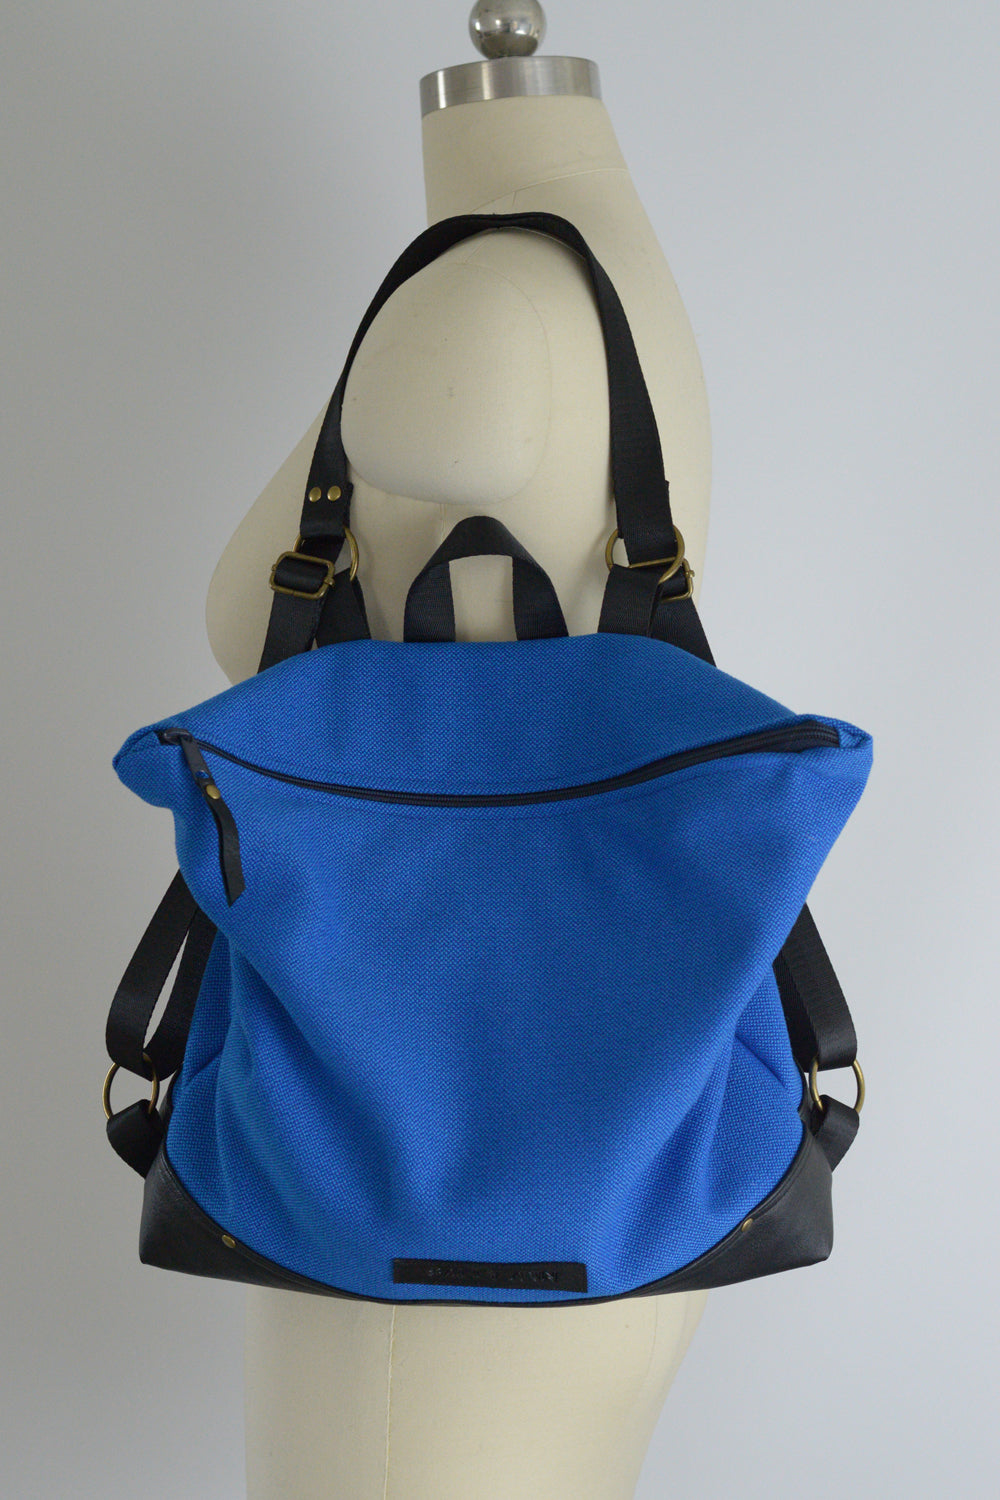 Bright Blue and Black Backpack | Made to Order